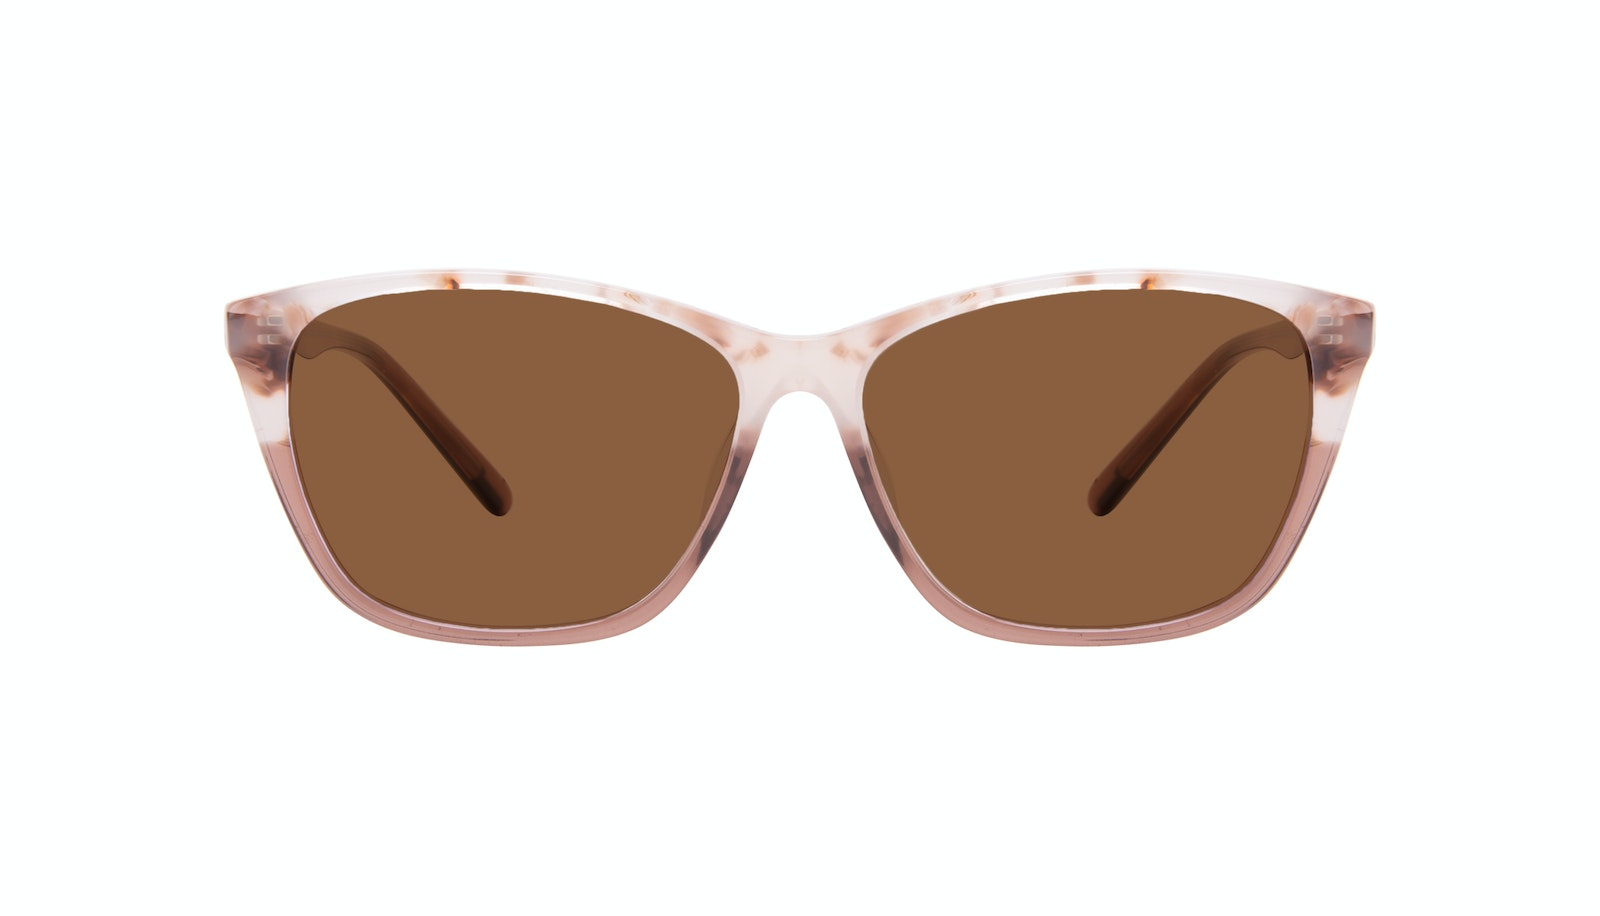 Affordable Fashion Glasses Cat Eye Rectangle Sunglasses Women Myrtle Frosted Sand